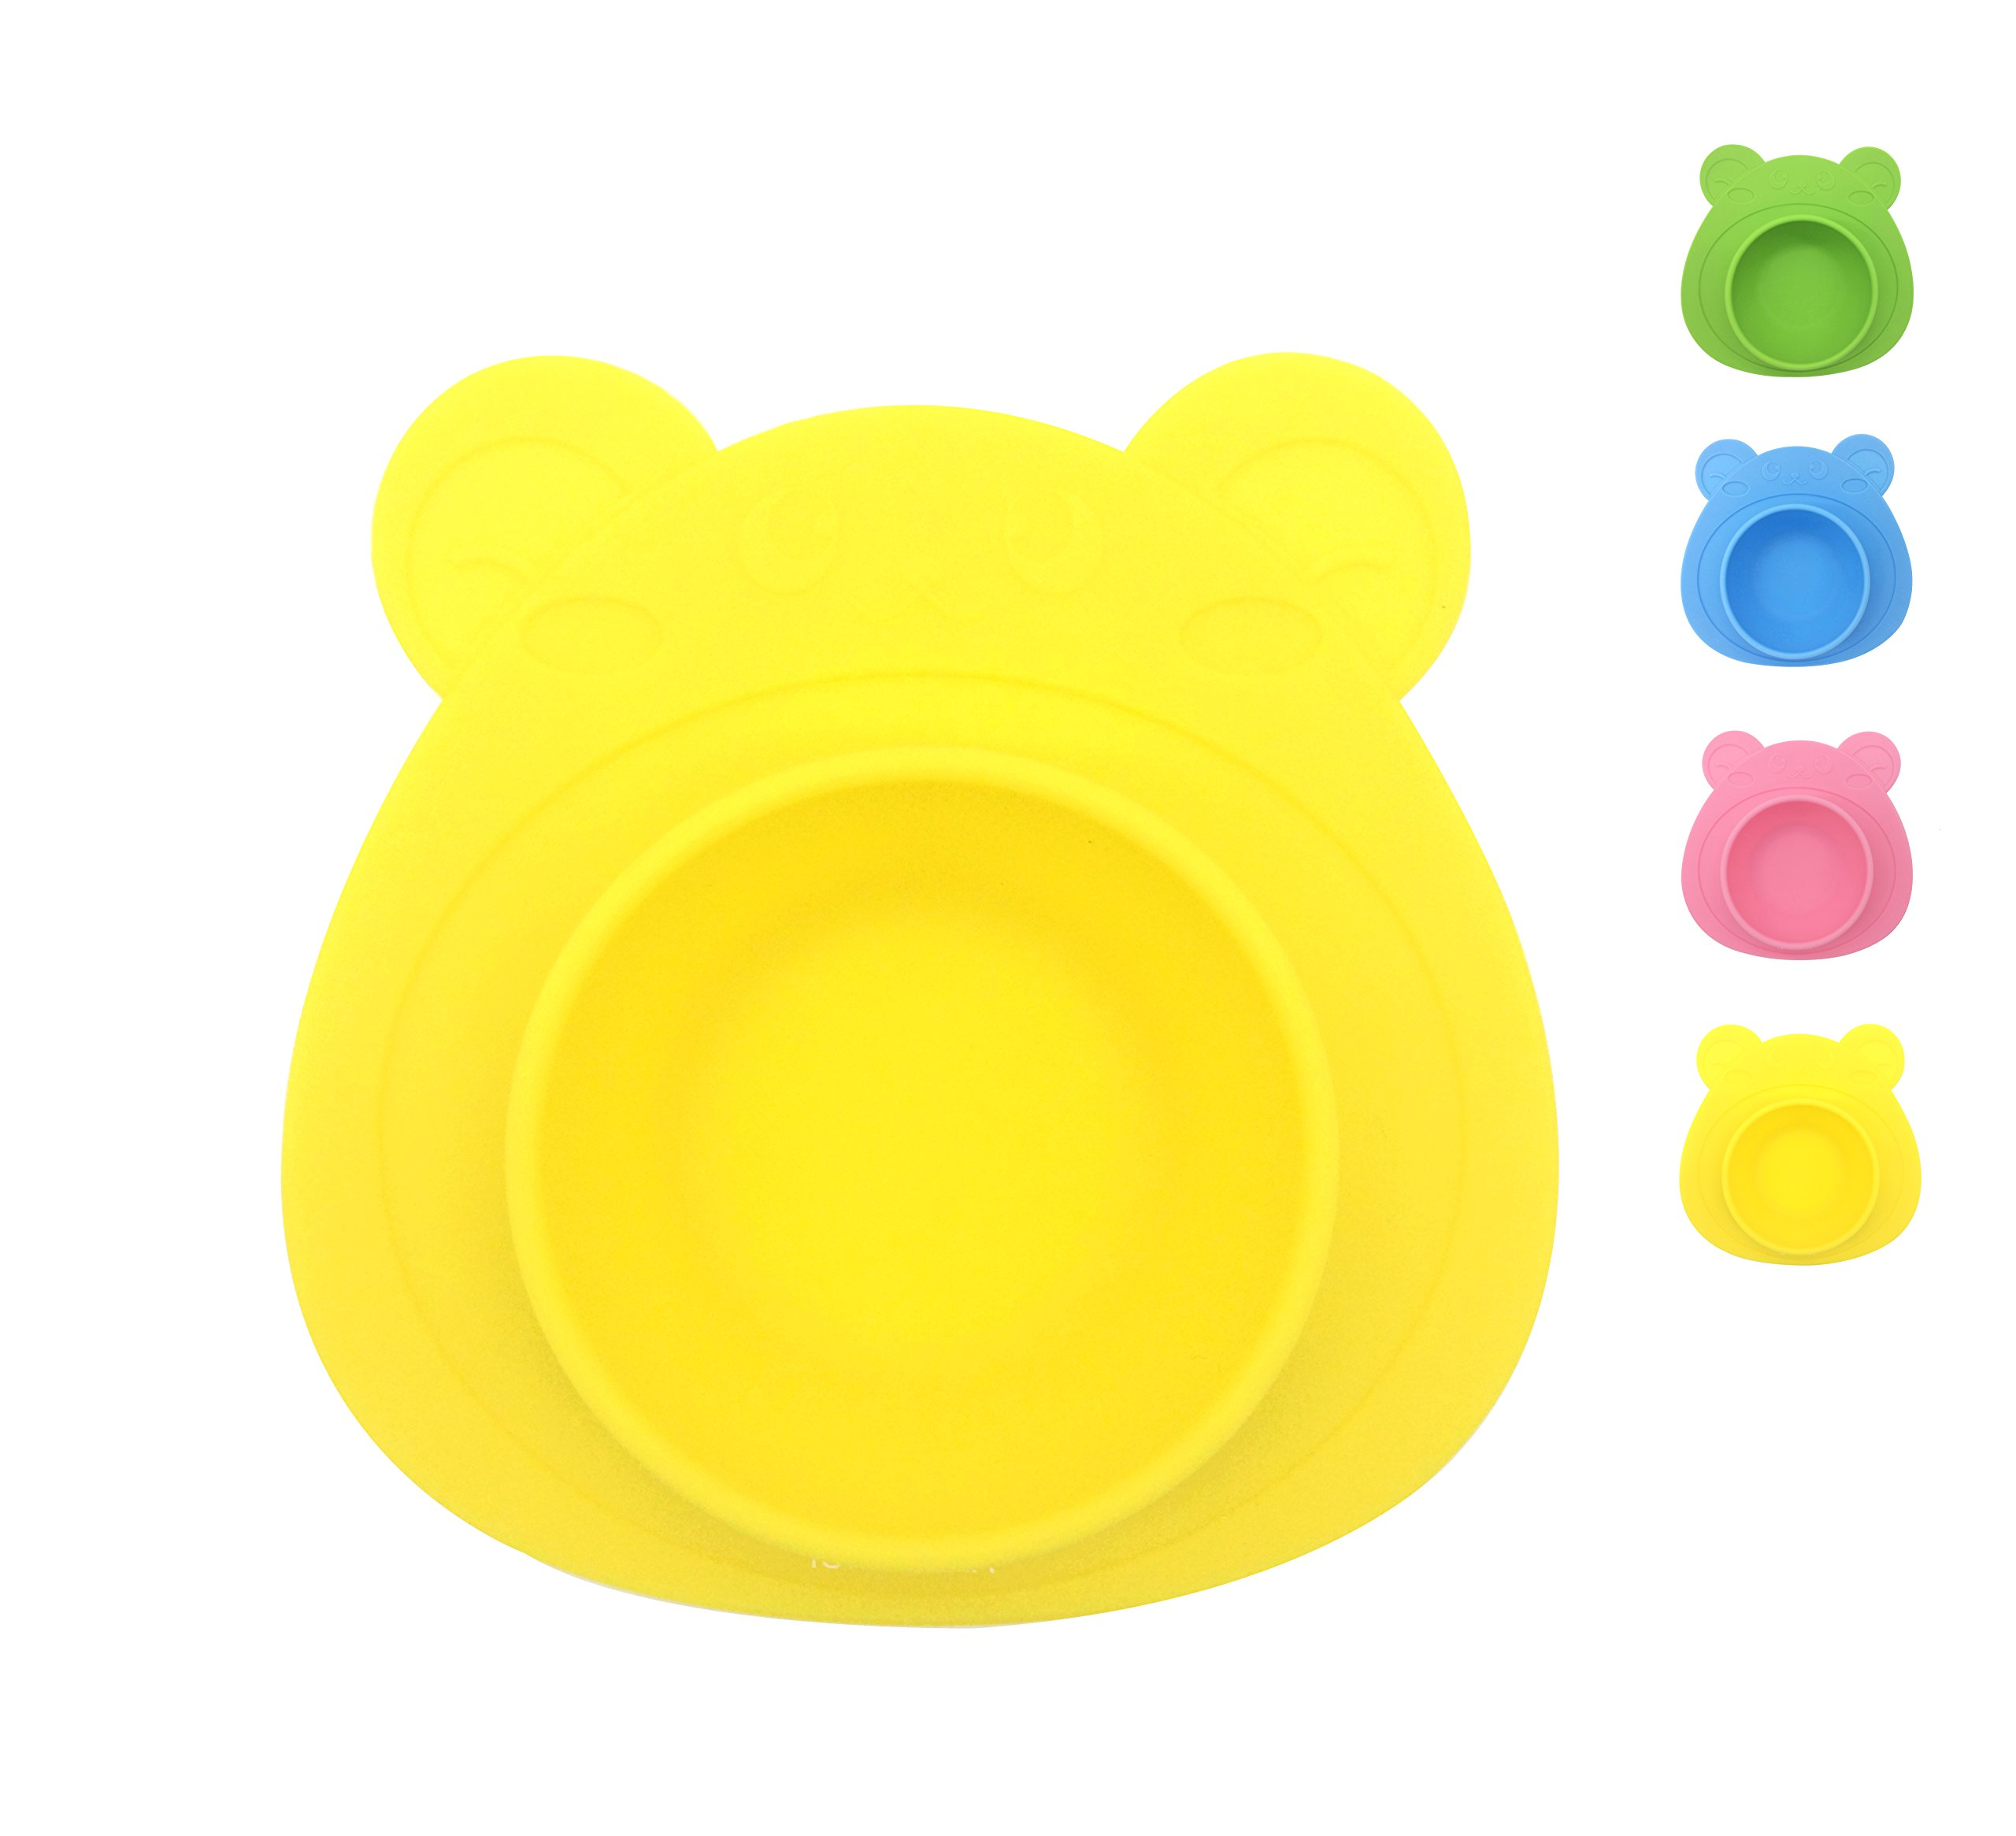 IoneStar One-Piece Mini Silicone Placemat Bowl Non-Toxic for Baby BPA Free, Bon-Slip Round Food Bowl with Suction for Kids Toddlers Childrens Dining,Reusable Collapsible Portable for Travel (Yellow)